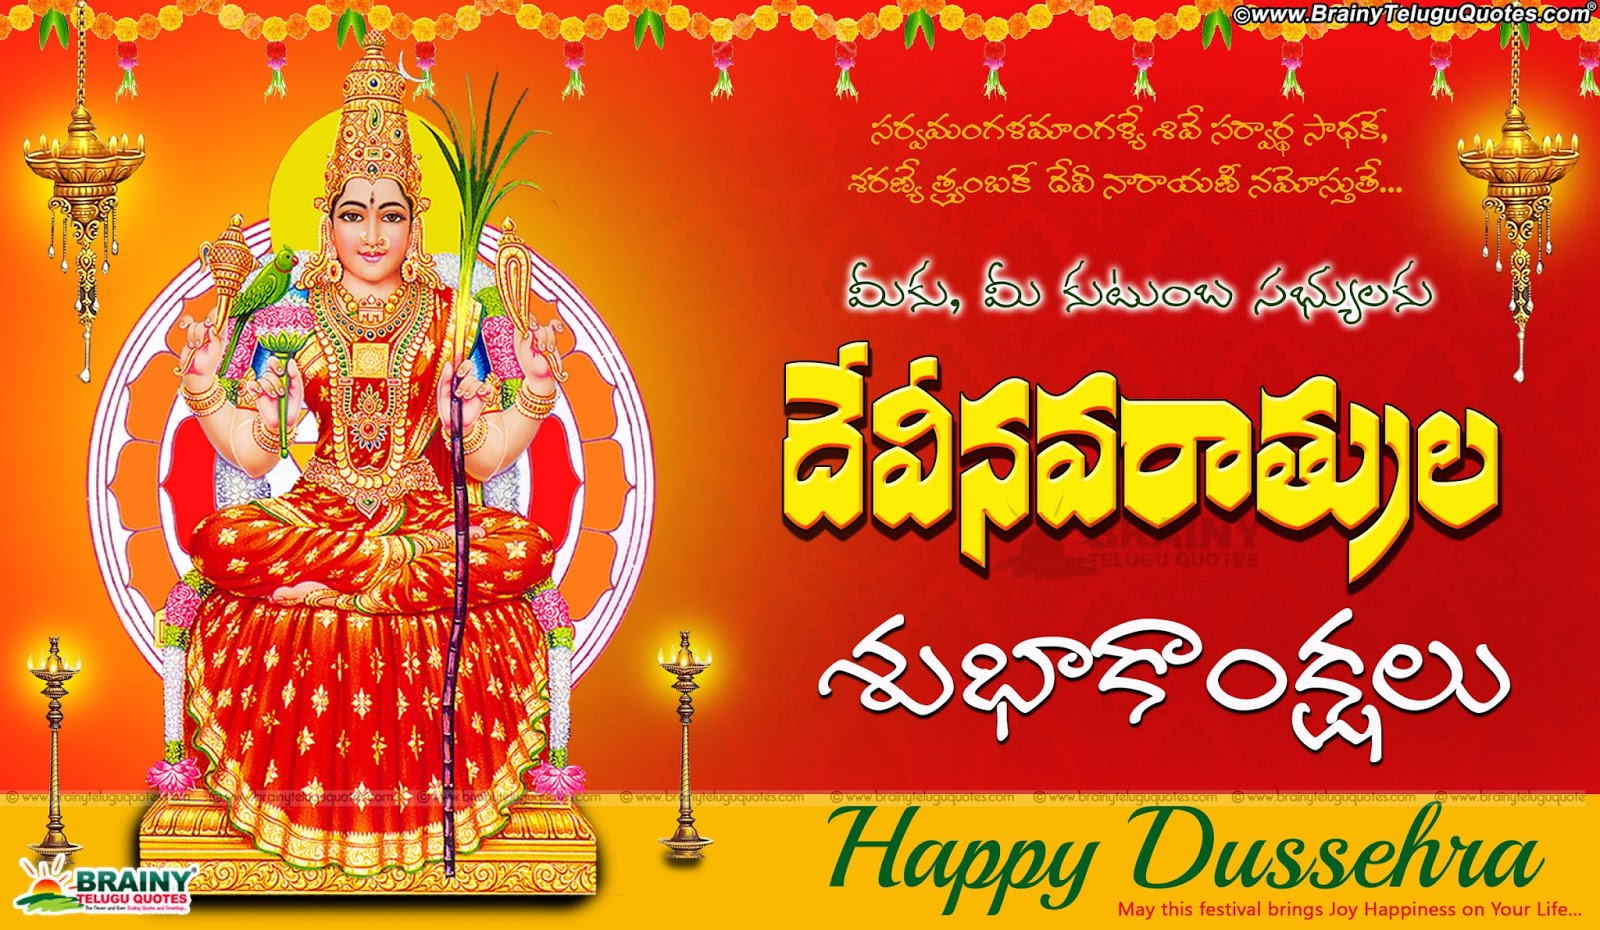 Importance of vijayadashami dussehra sms greetings in telugu here is telugu vijayadashami dussehra greetings quotes wallpapers messages information latest telugu vijayadashami greetings m4hsunfo